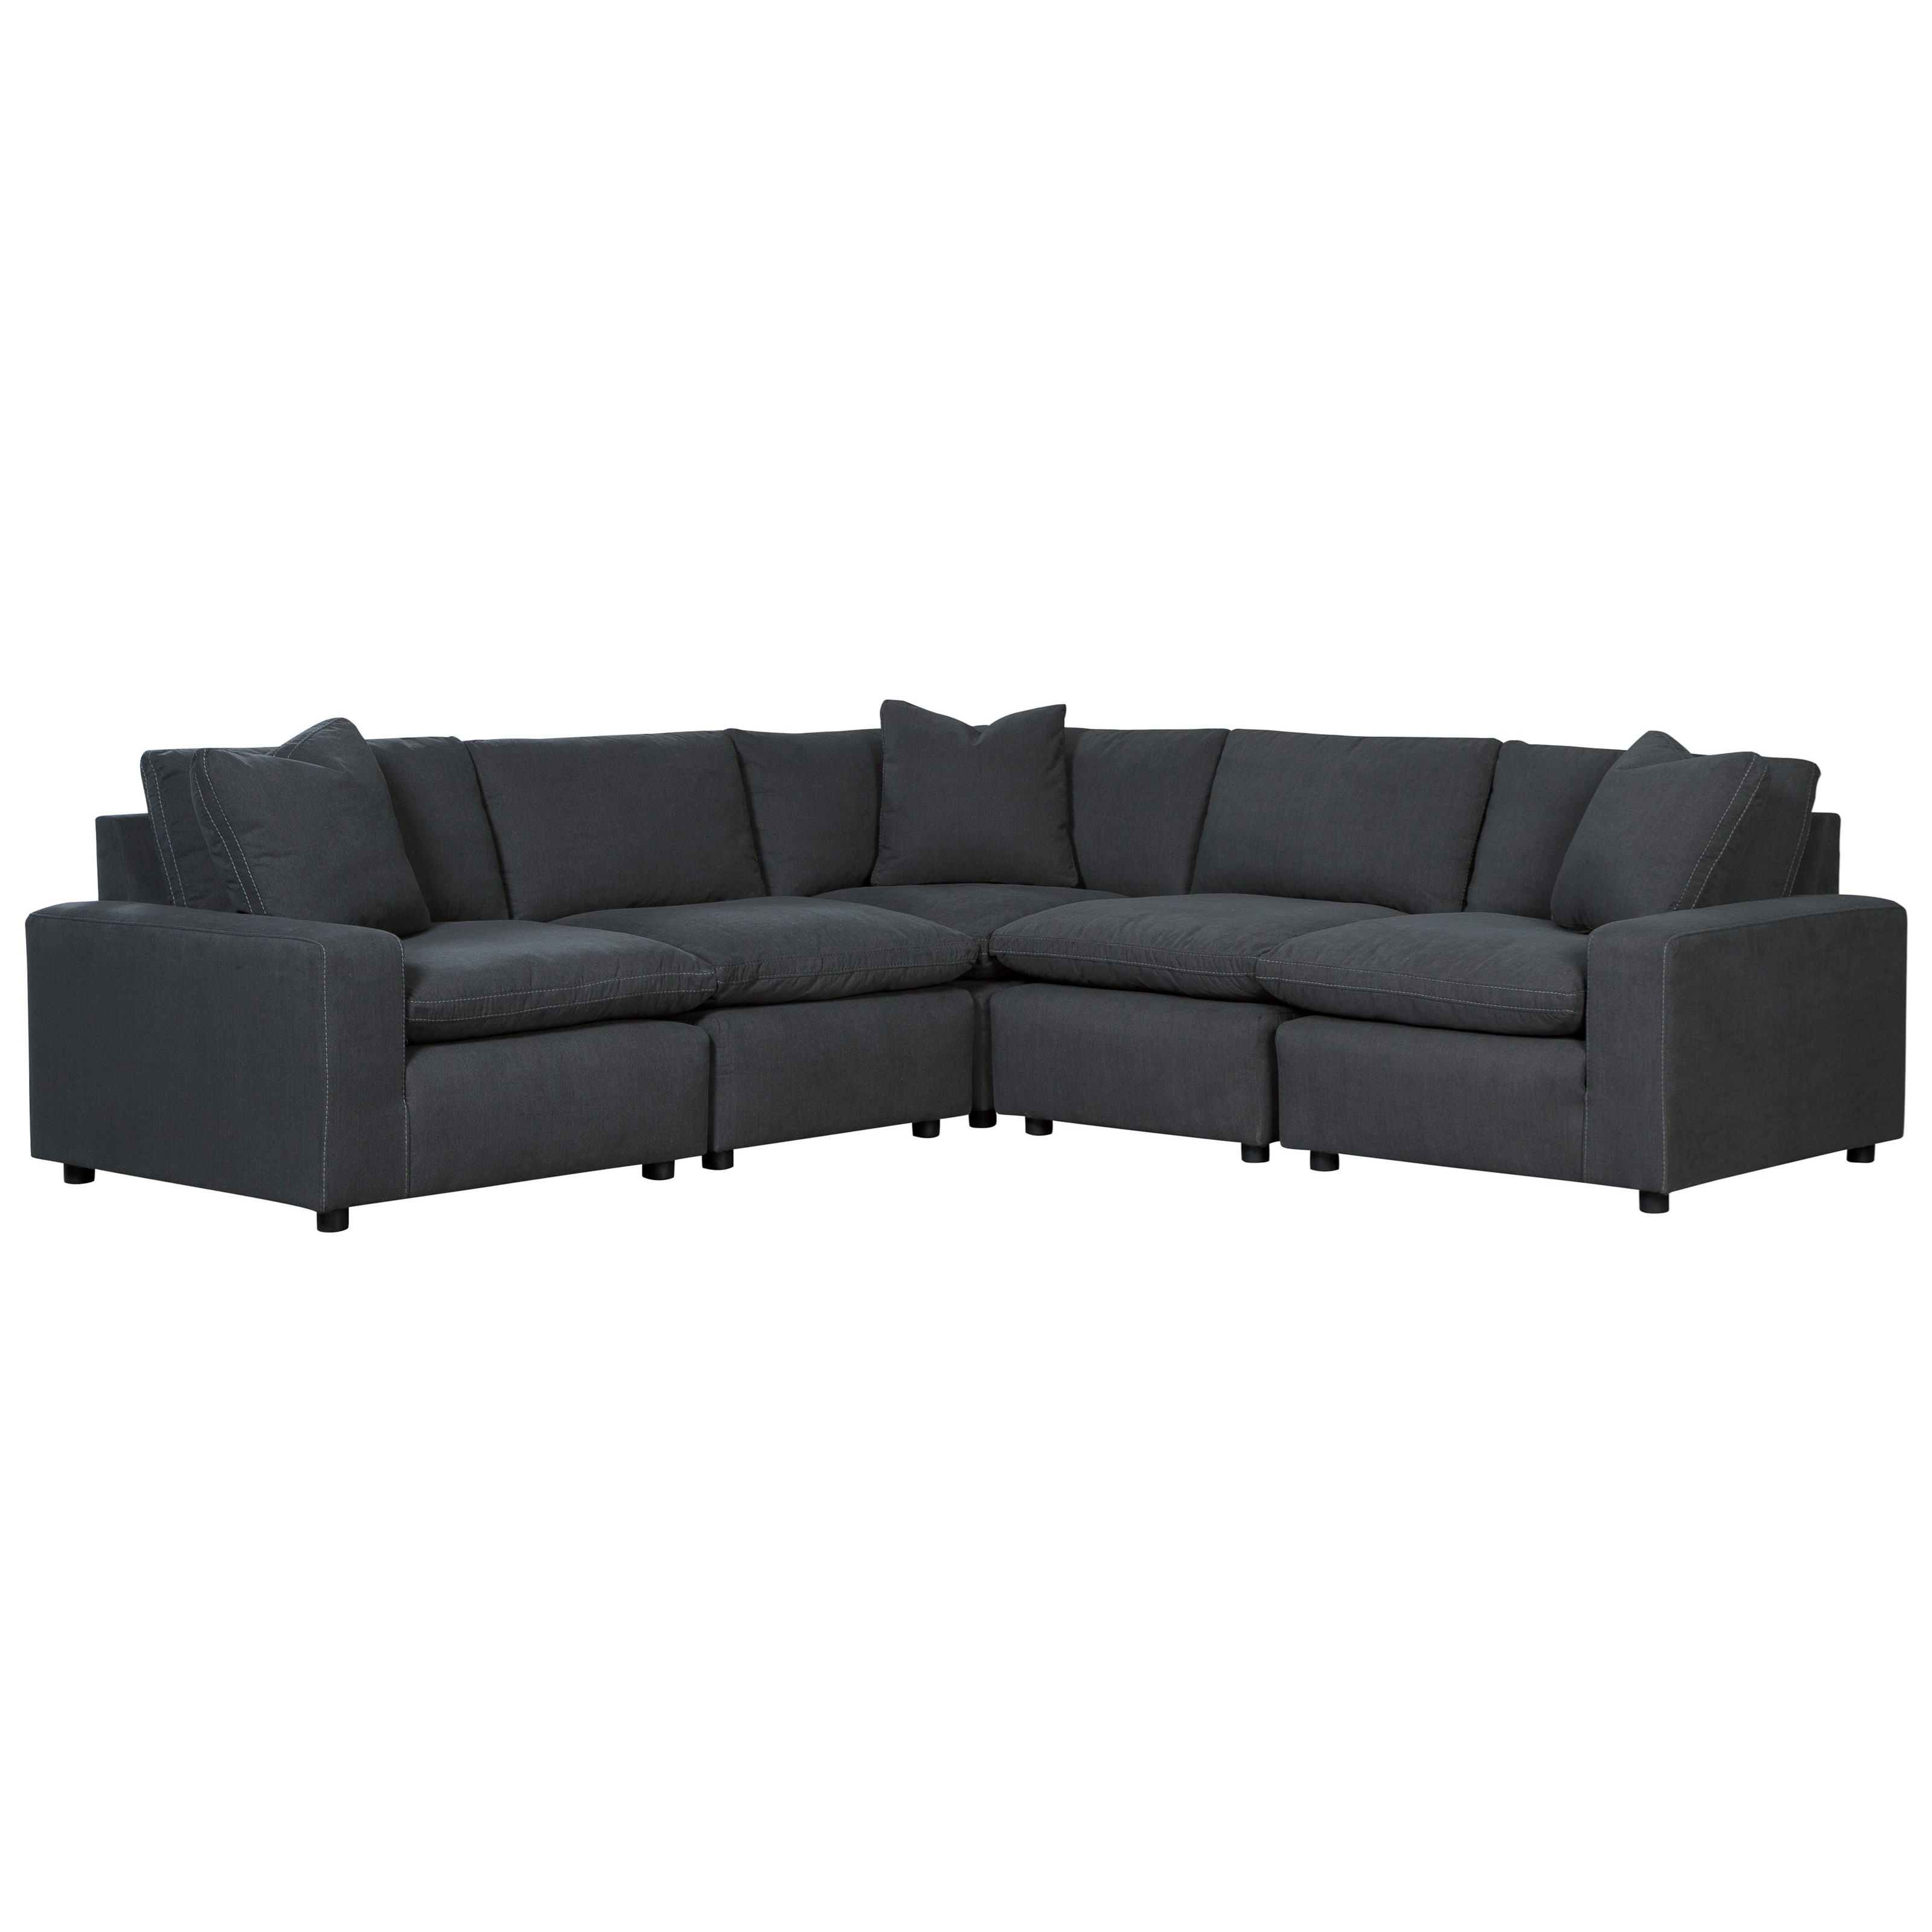 Savesto Sectional by Signature Design by Ashley at Red Knot